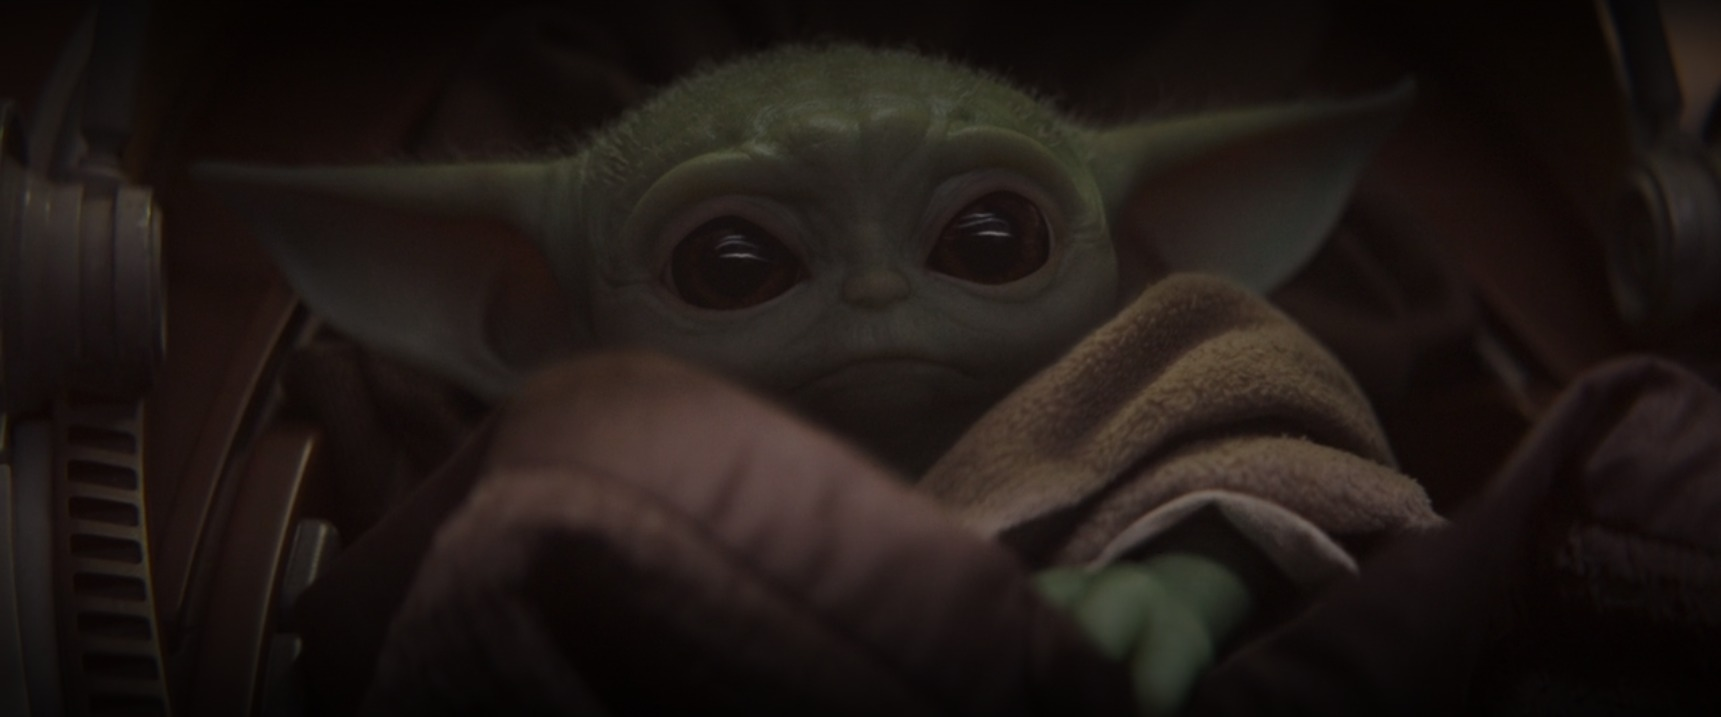 A little baby from Yoda's species lays in a space crib in The Mandalorian